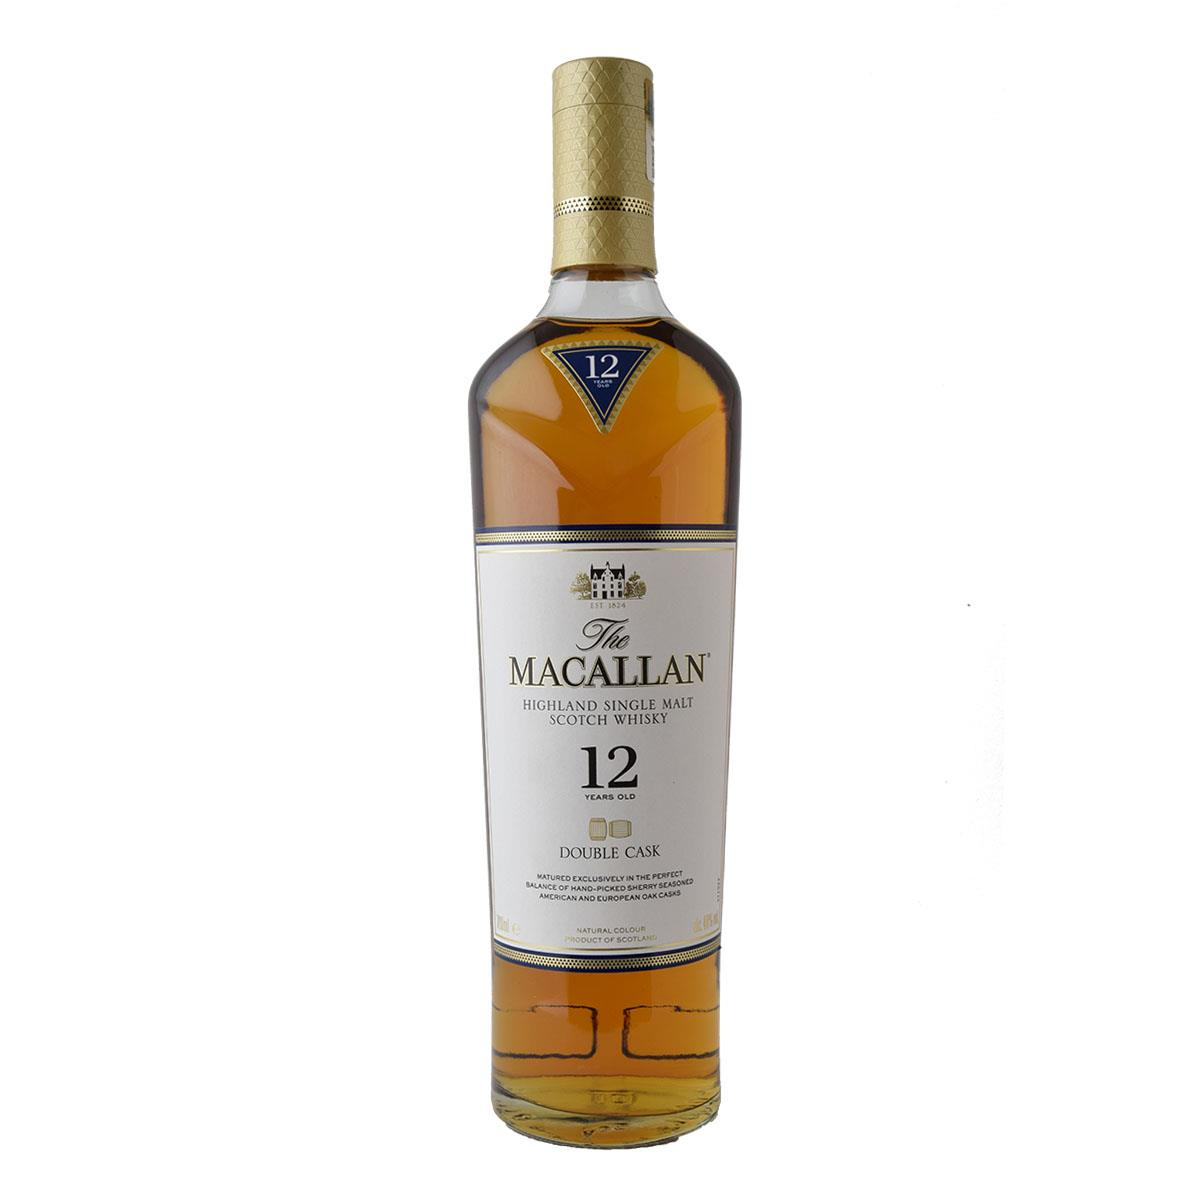 Macallan 12 y.o. Double Cask 700ml